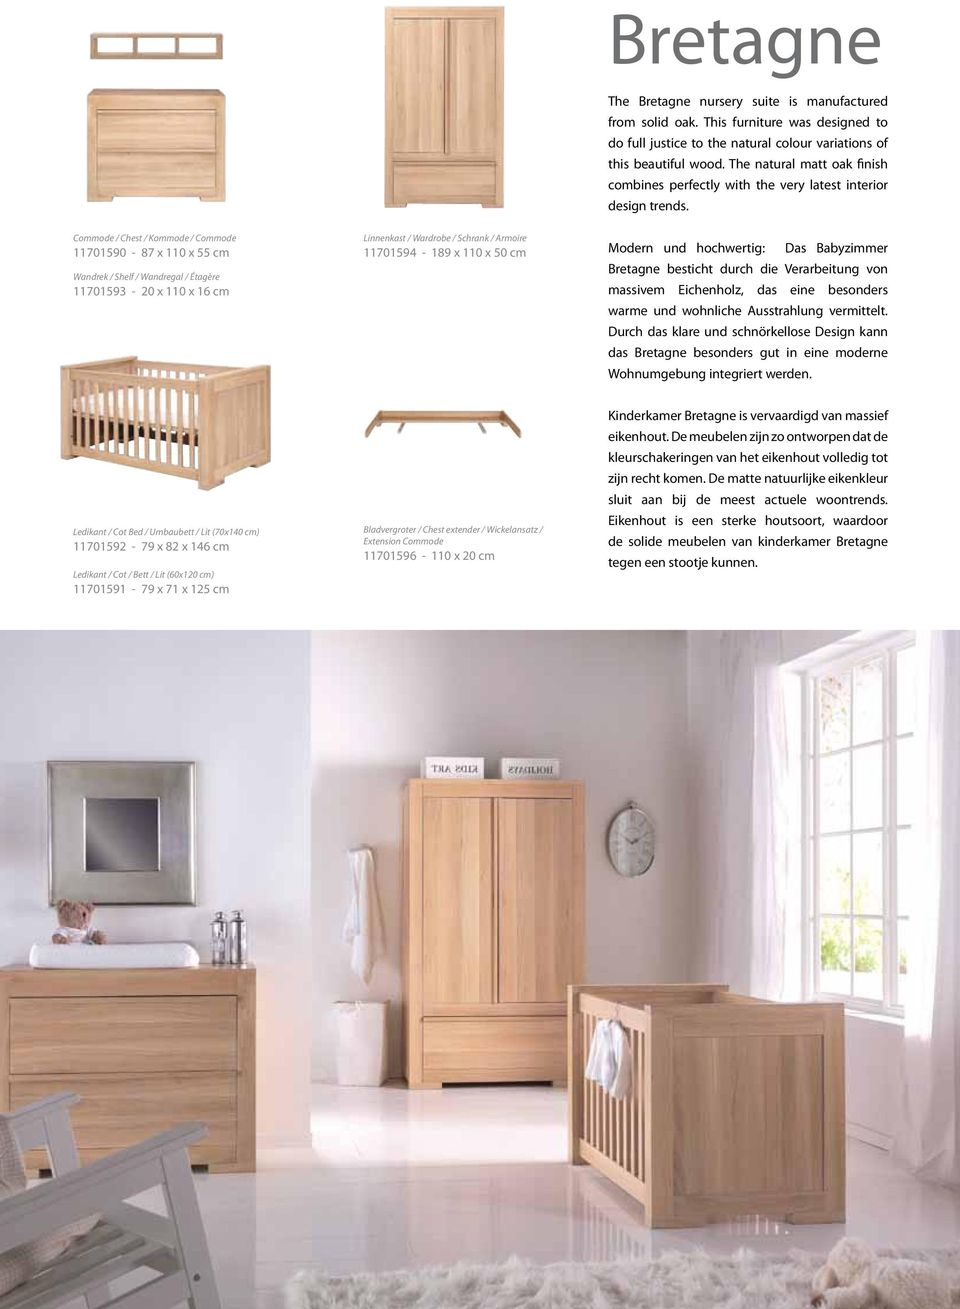 the natural matt oak finish combines perfectly with the very latest interior design trends